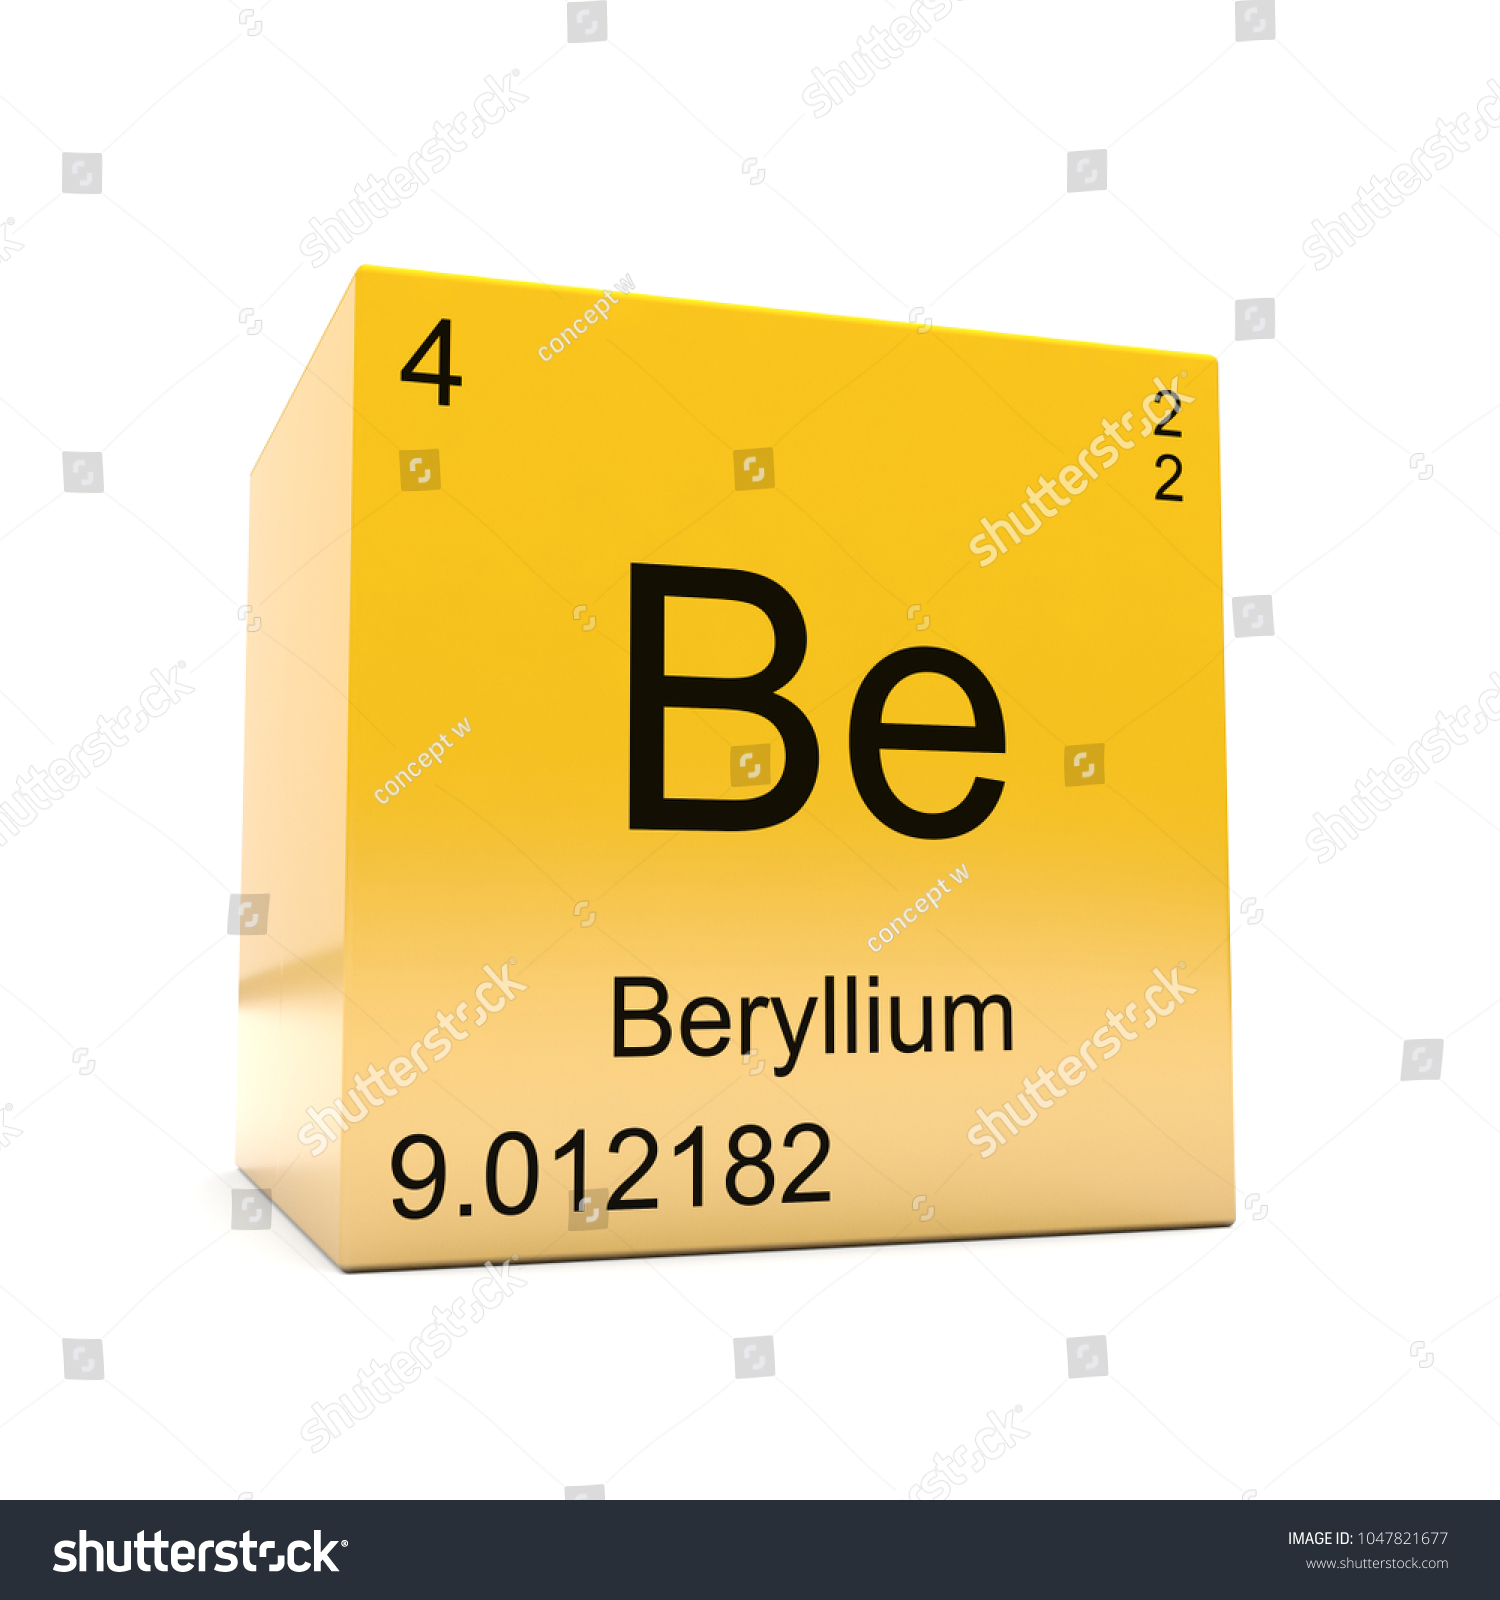 Periodic table of elements beryllium gallery periodic table and beryllium chemical symbol images symbol and sign ideas beryllium chemical element symbol periodic table stock beryllium biocorpaavc Images